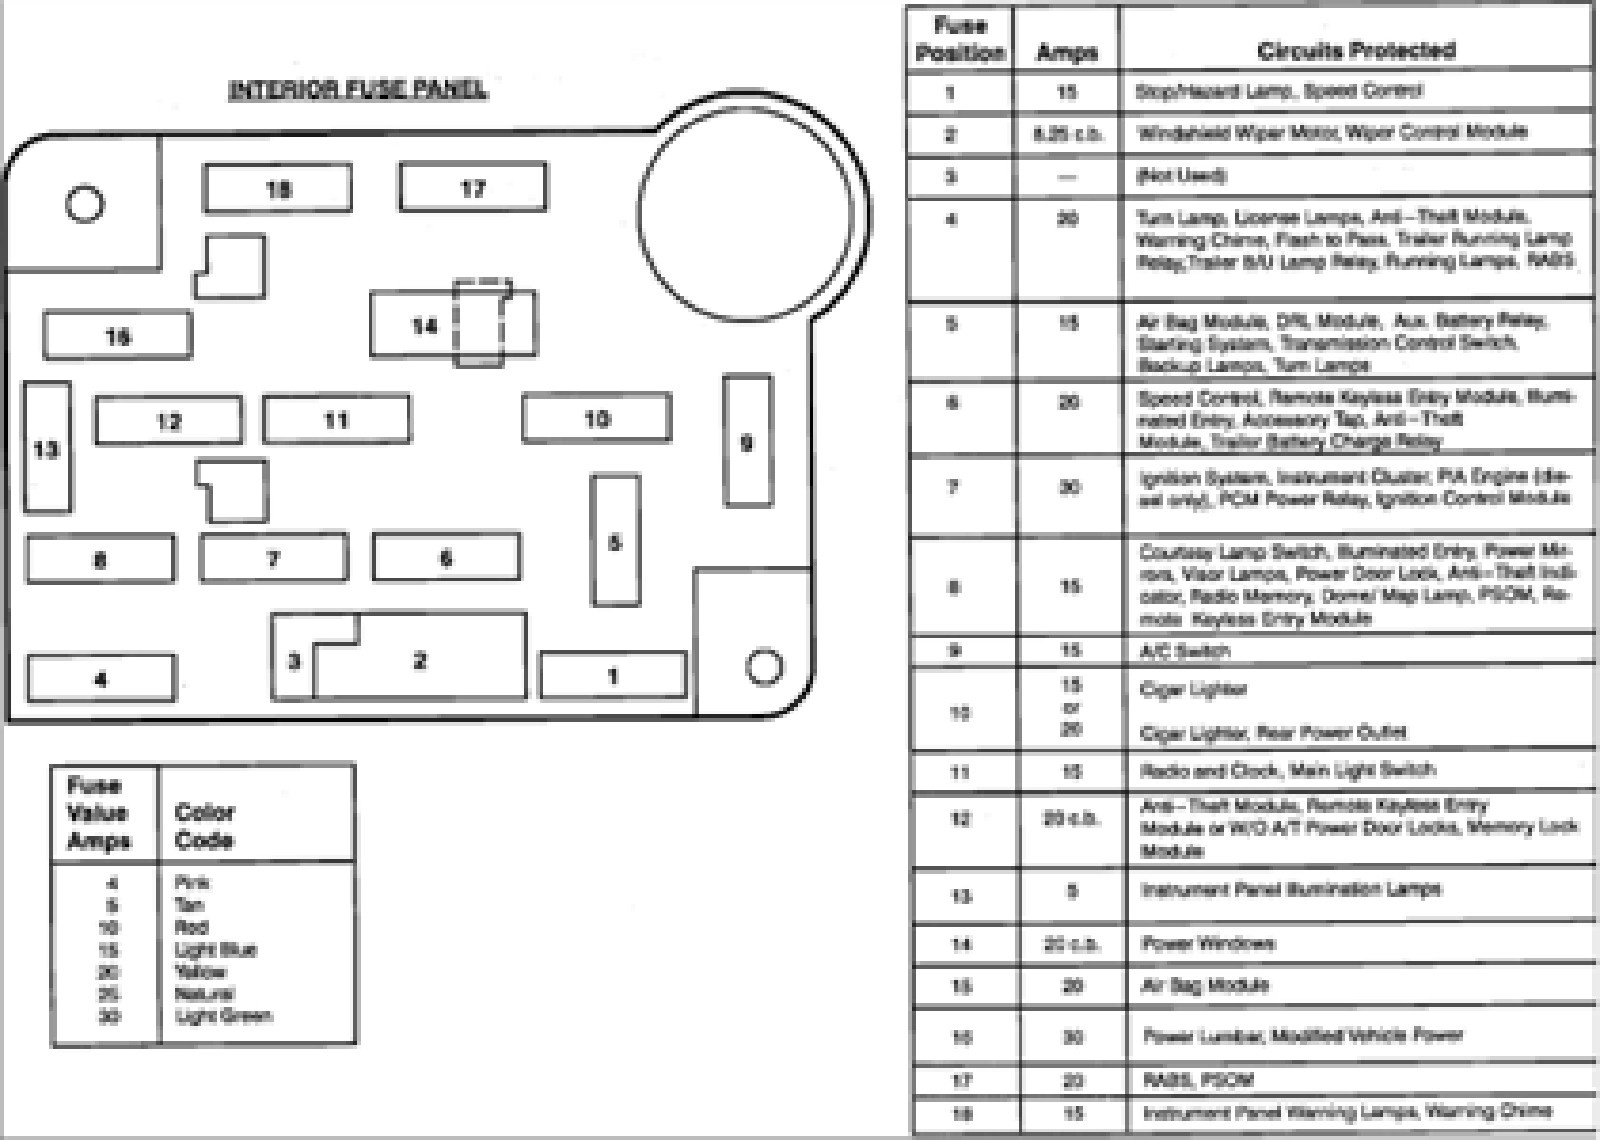 [DIAGRAM_4FR]  C21274 2000 Ford E 150 Fuse Panel Diagram | Wiring Library | Altanator Relay Ford E 150 Fuse Diagram |  | Wiring Library